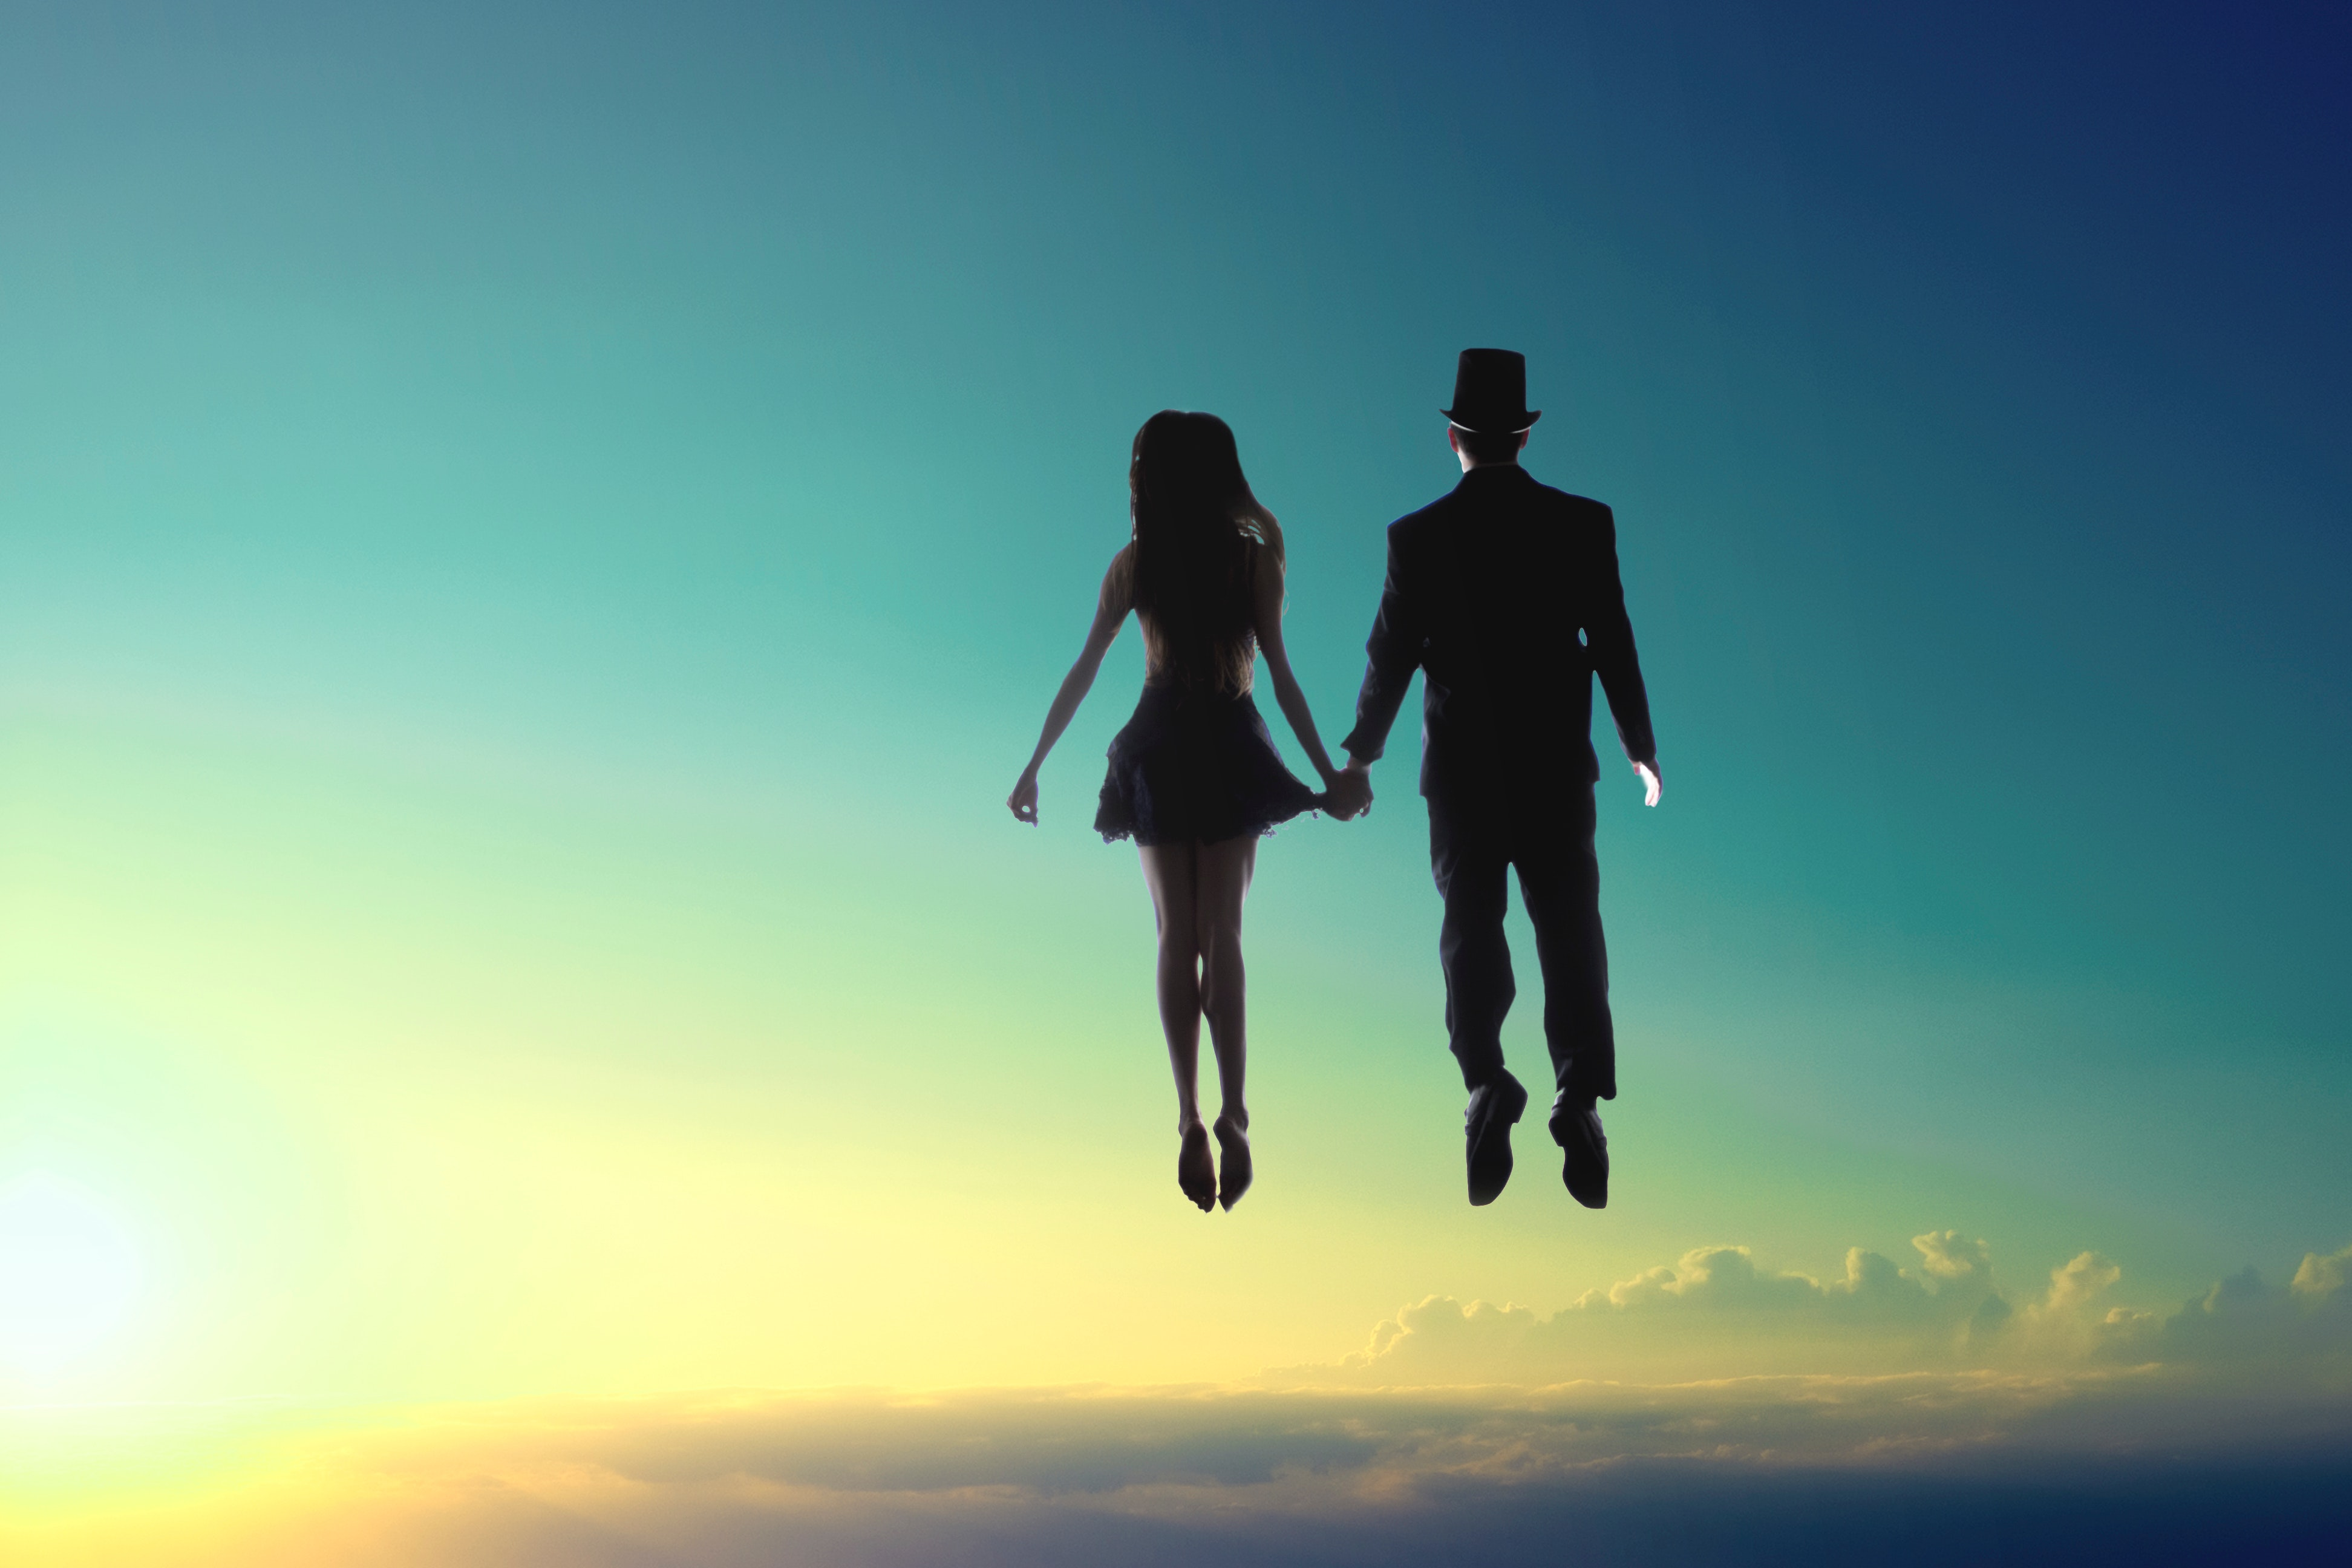 man-and-woman-floating-on-sky-in-a-dream.jpg